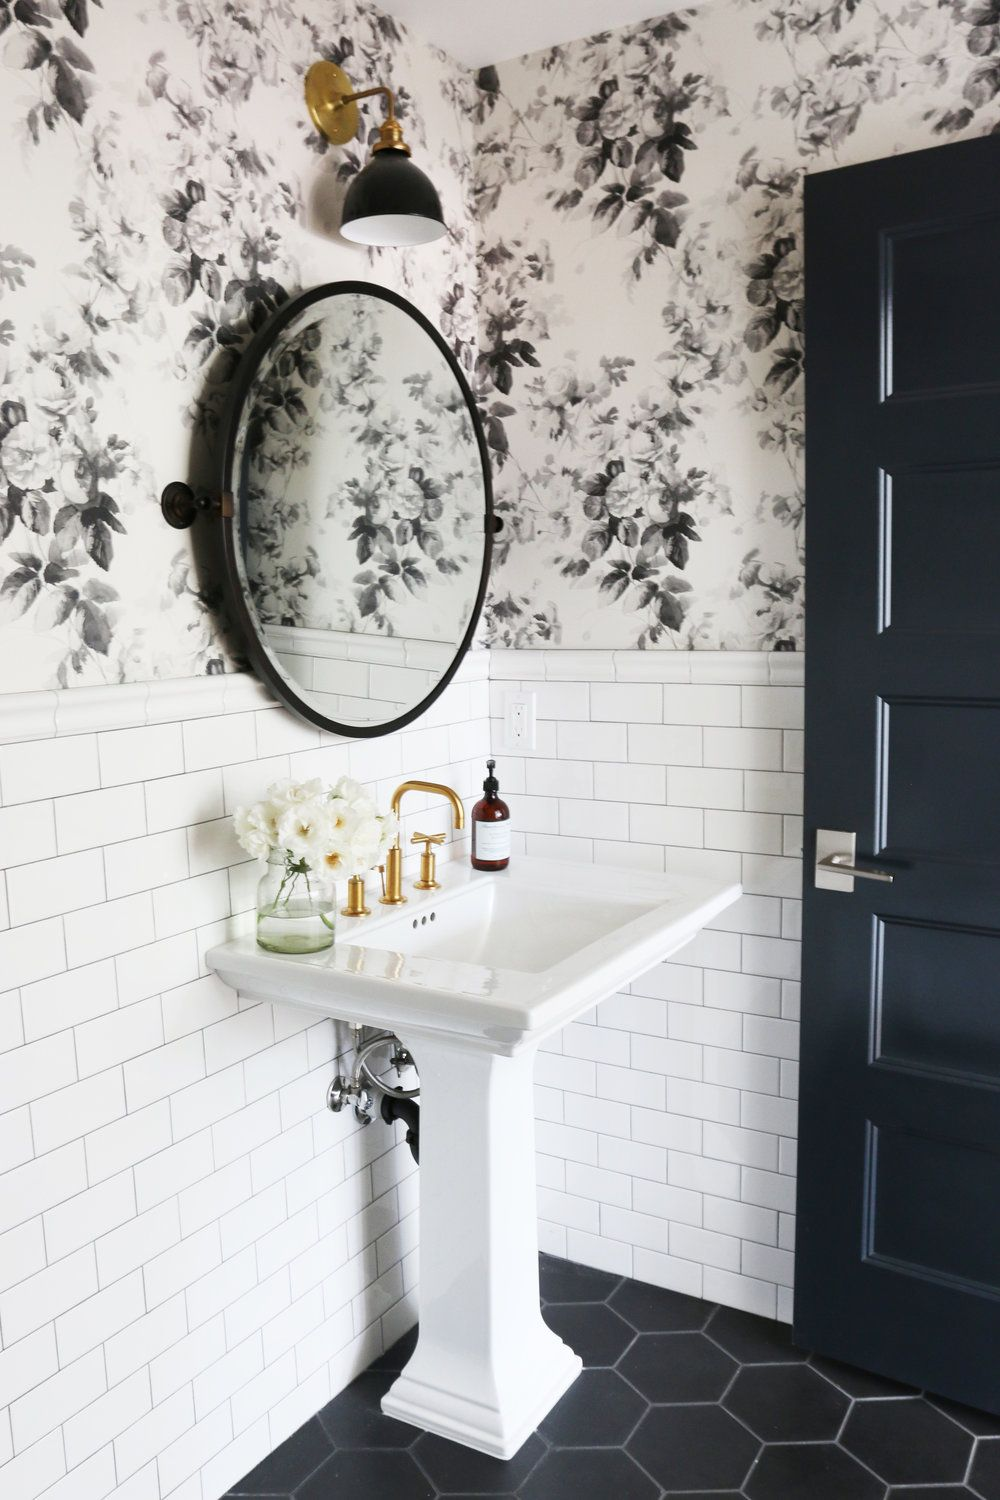 Incroyable 5 Tips For A Small Bathroom